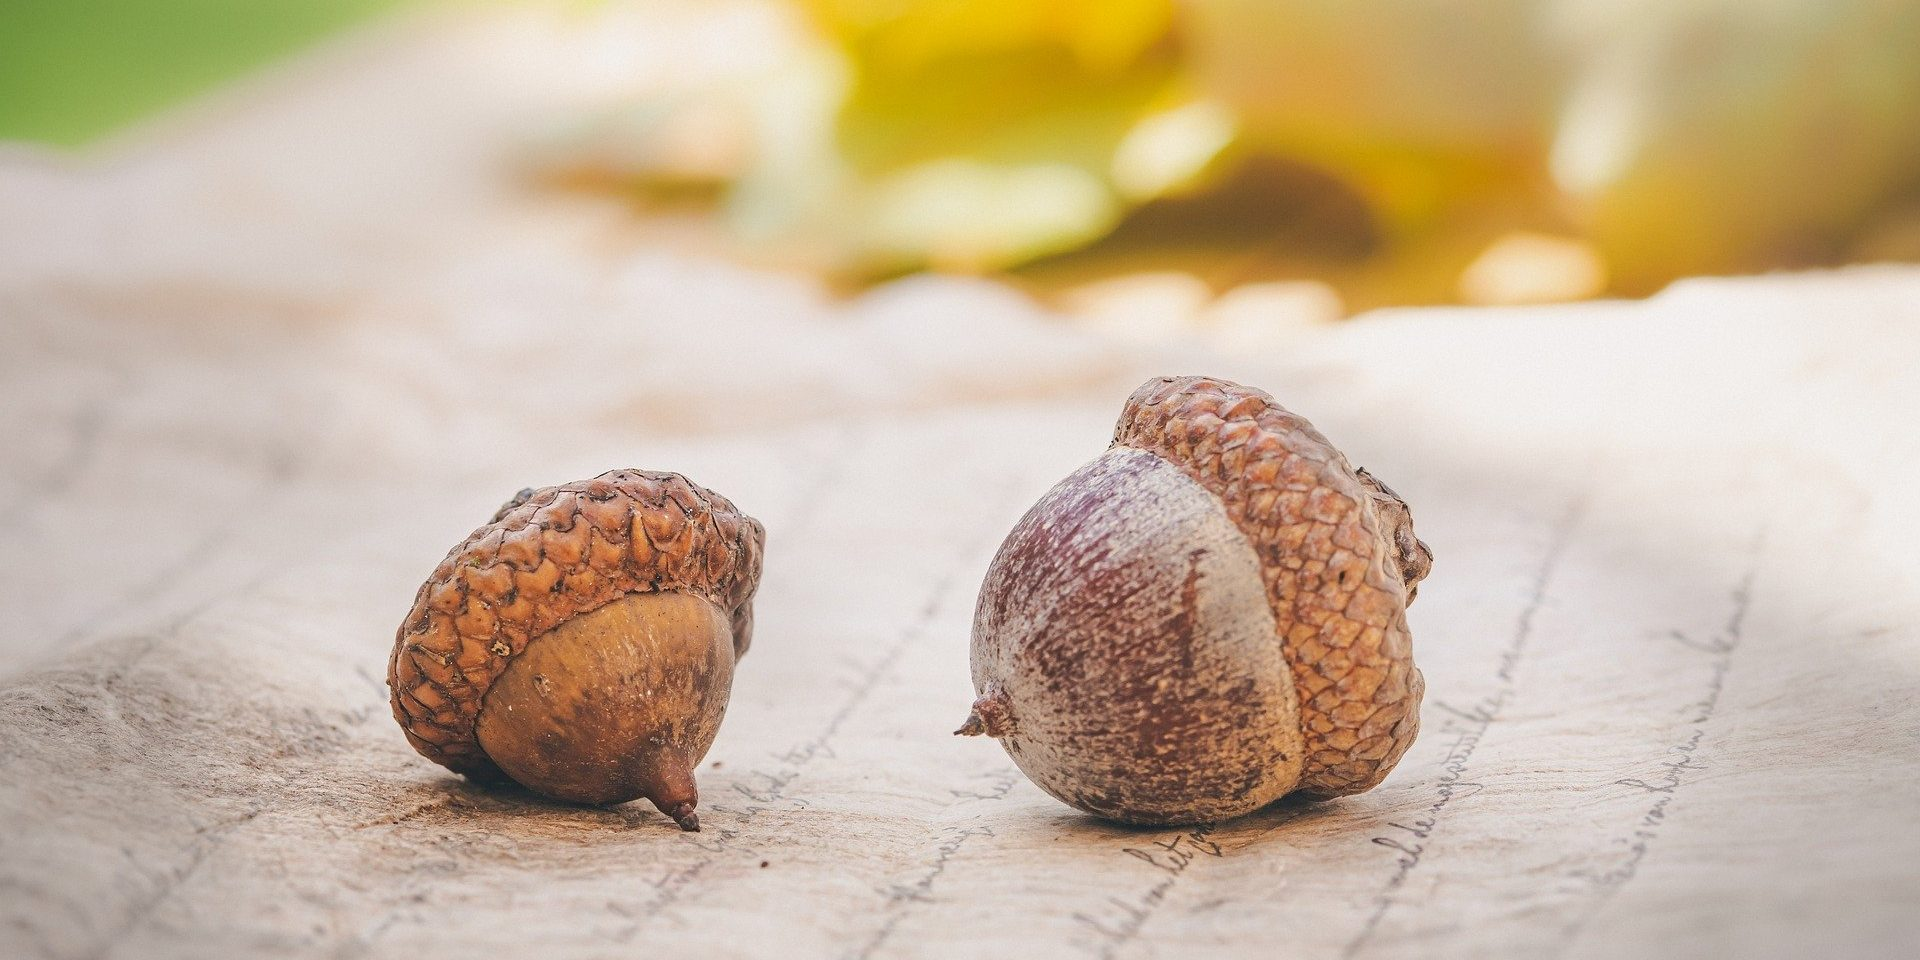 Two acorns with oak leaves in the background.